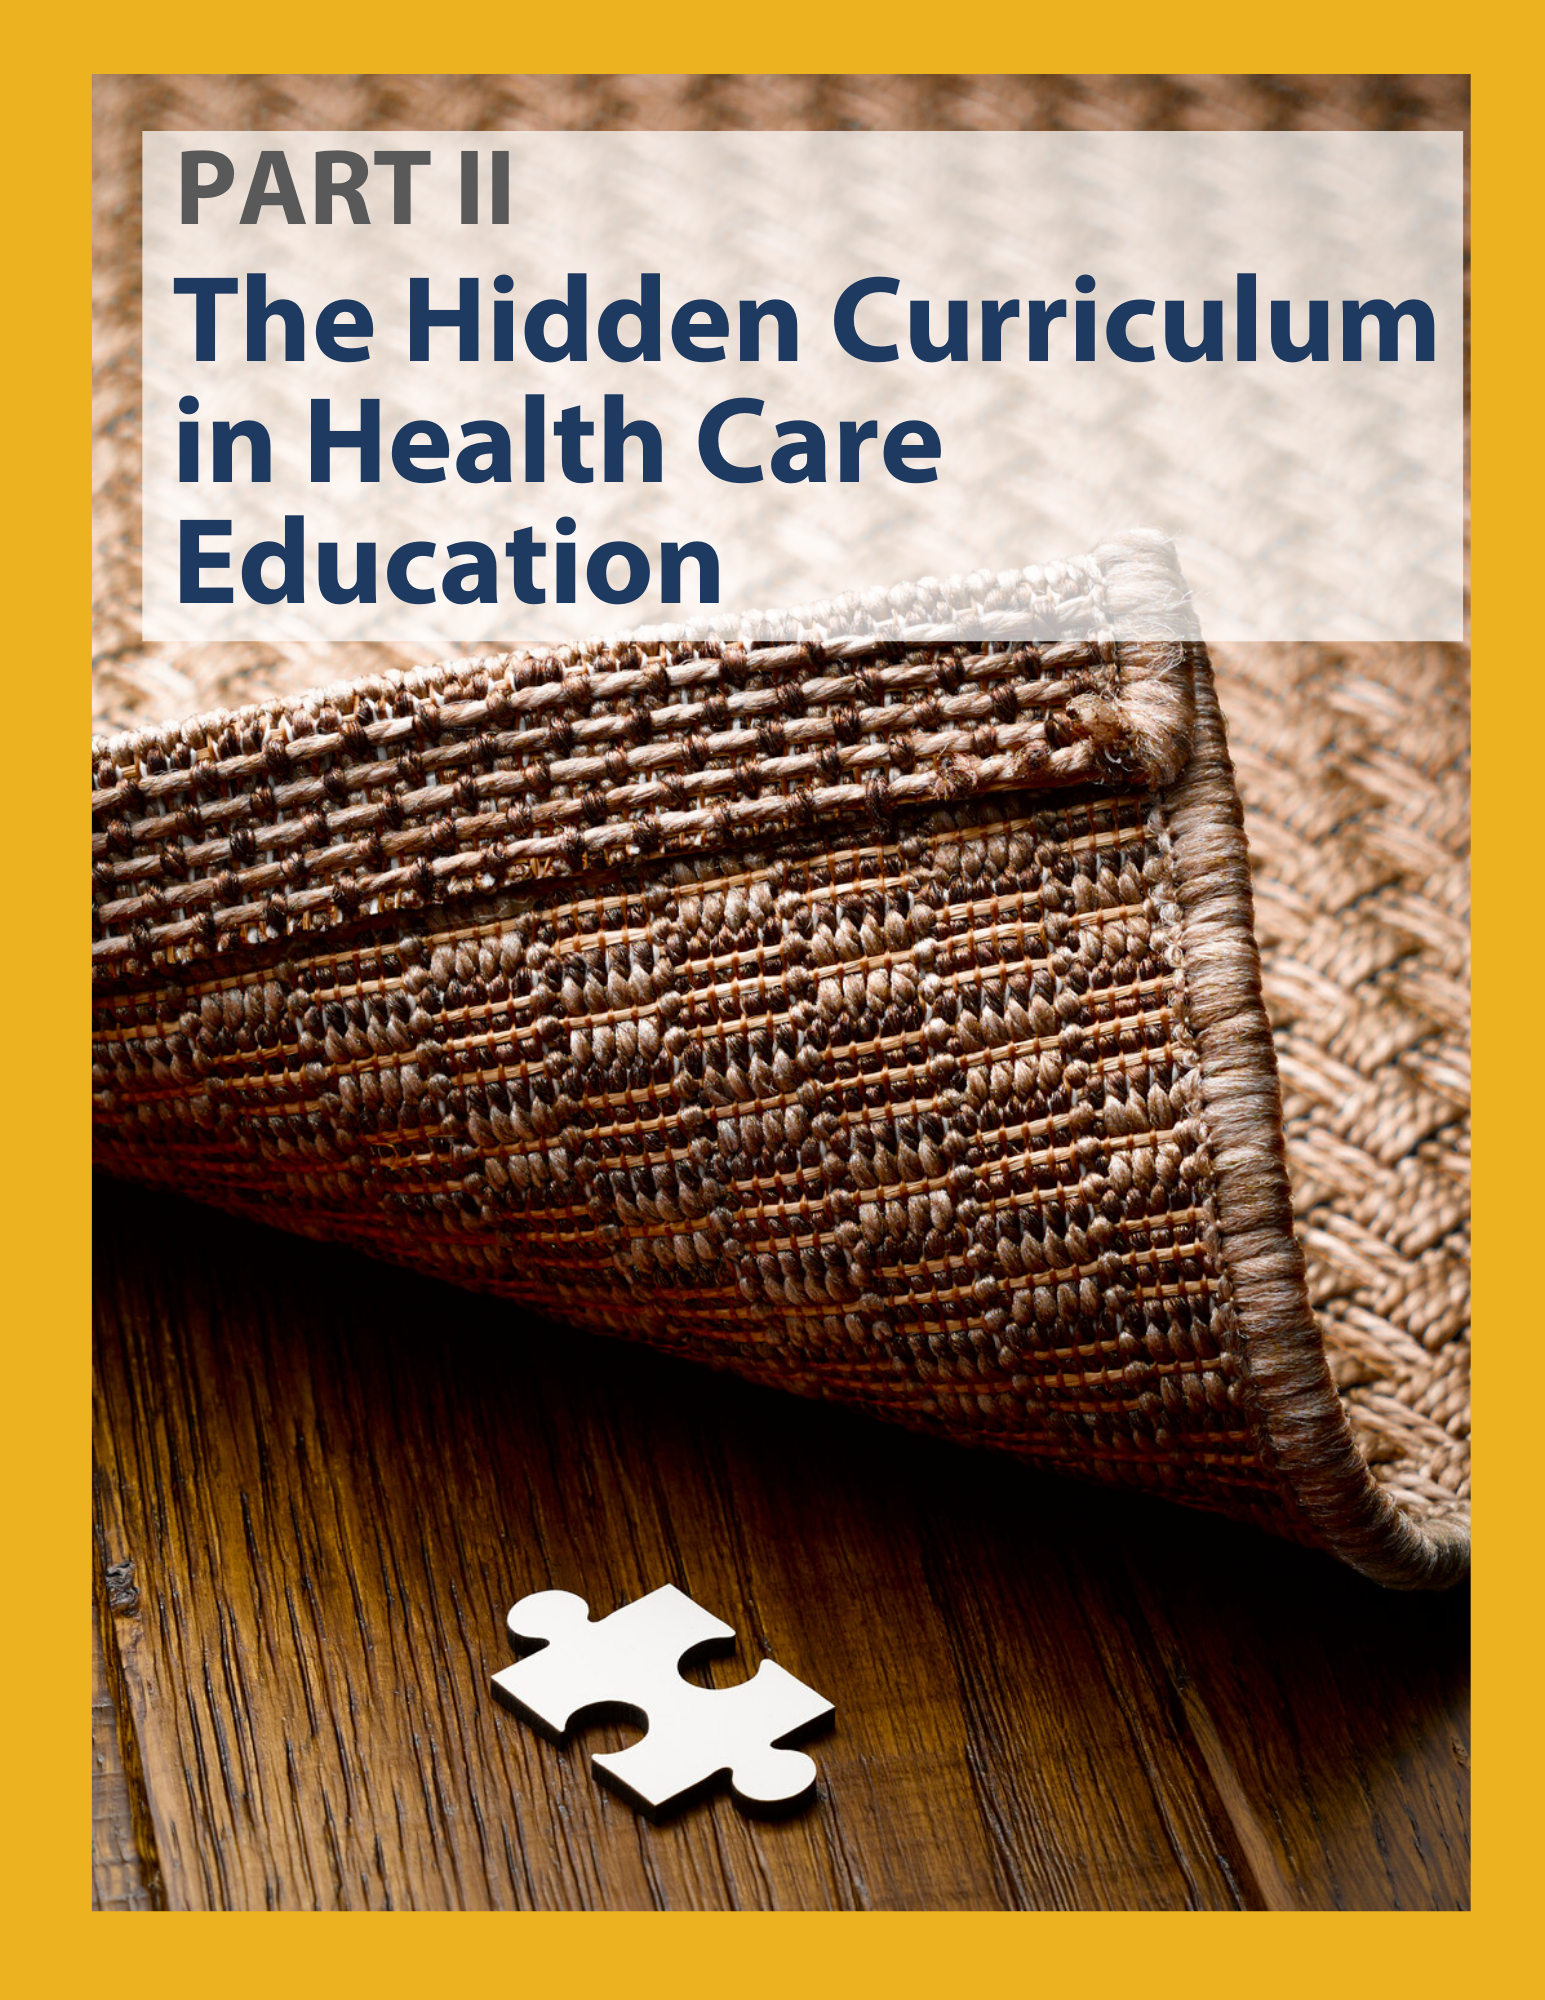 Link to a PDF  - Part 2: The Hidden Curriculum in Health Care Education